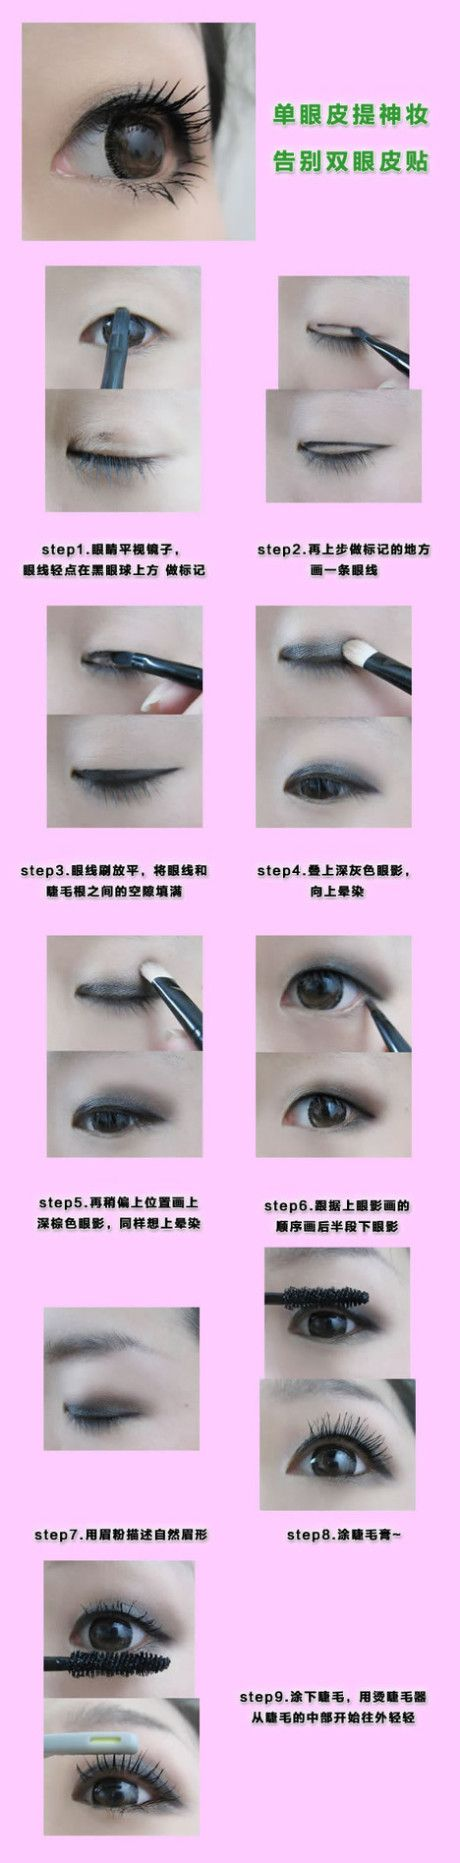 Eye makeup tutorial for single eye lid #eyes #makeup #tutorial